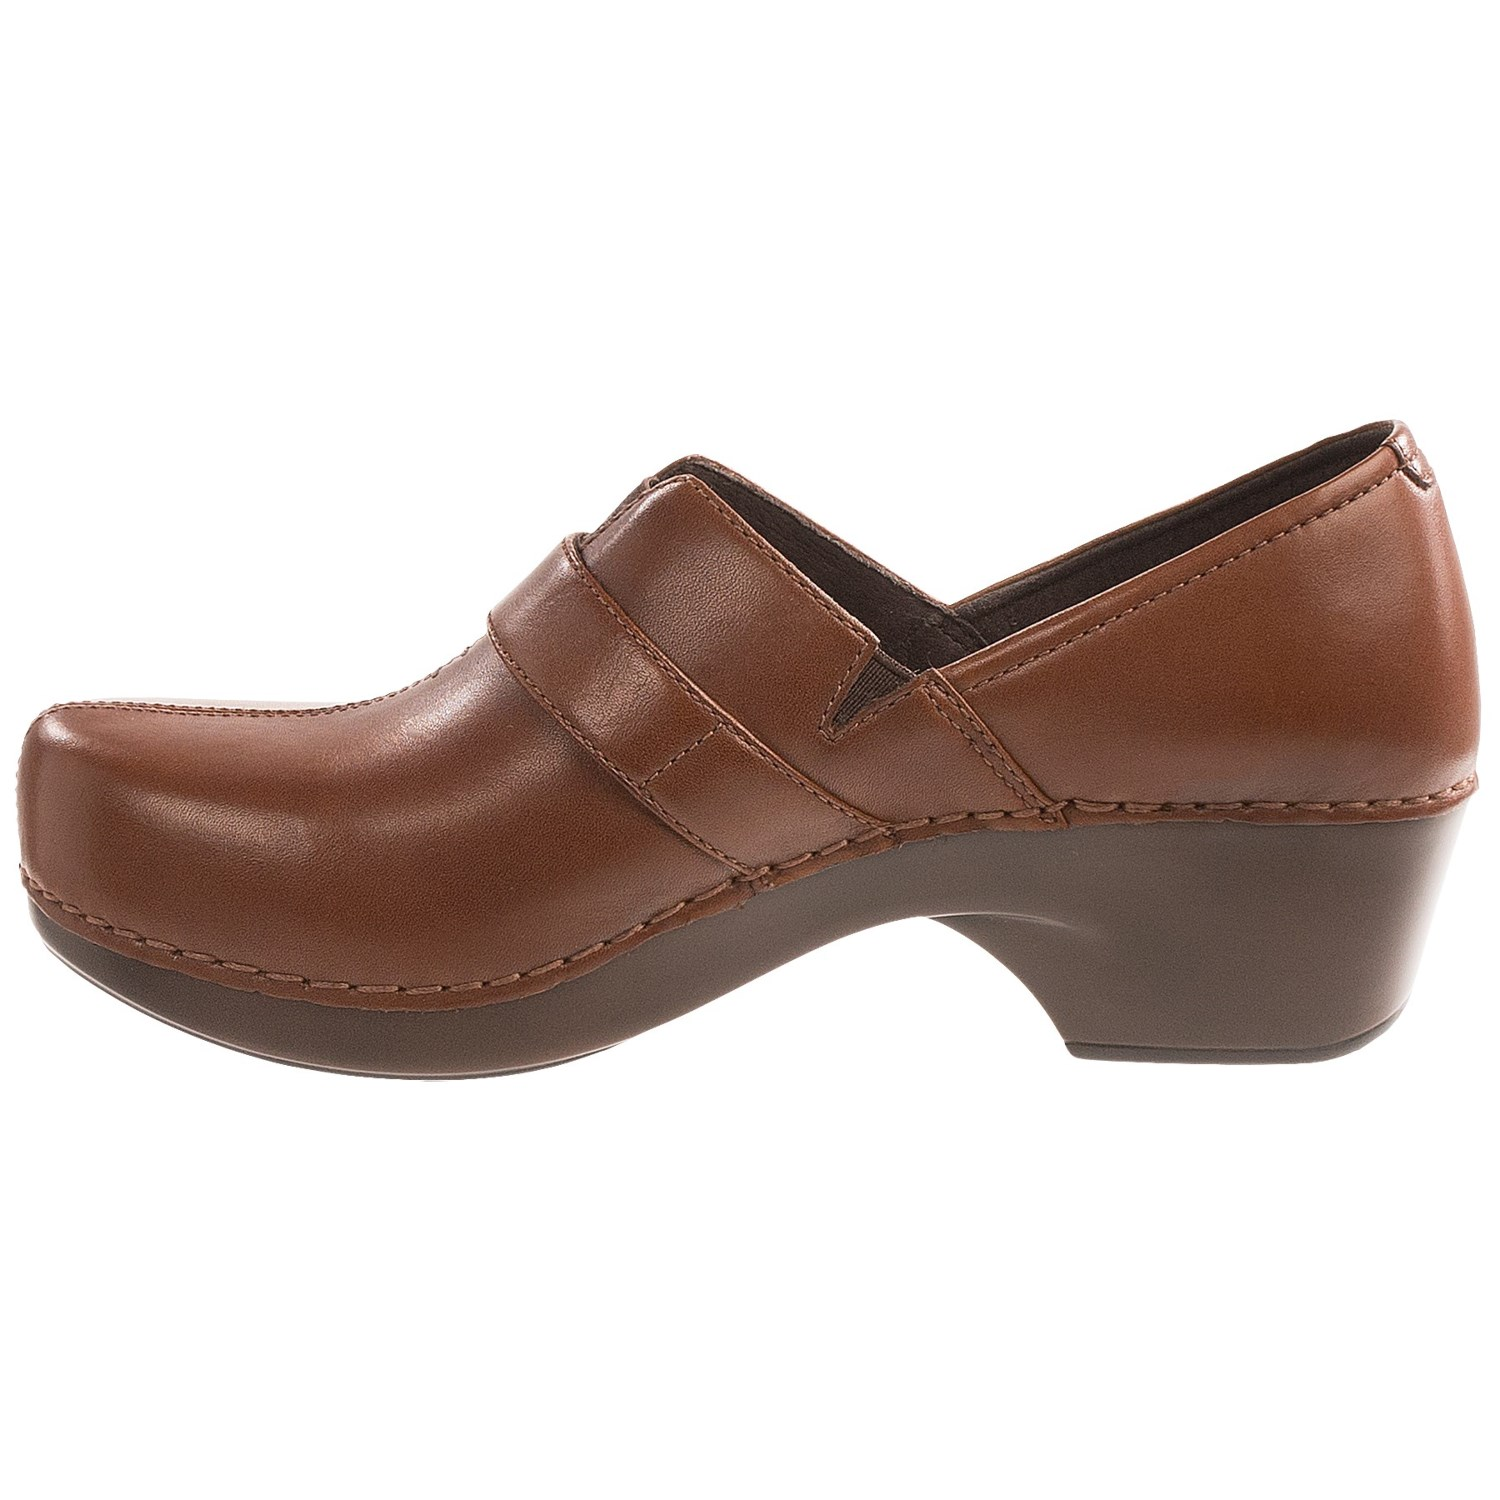 Dansko Shoes Where Buy